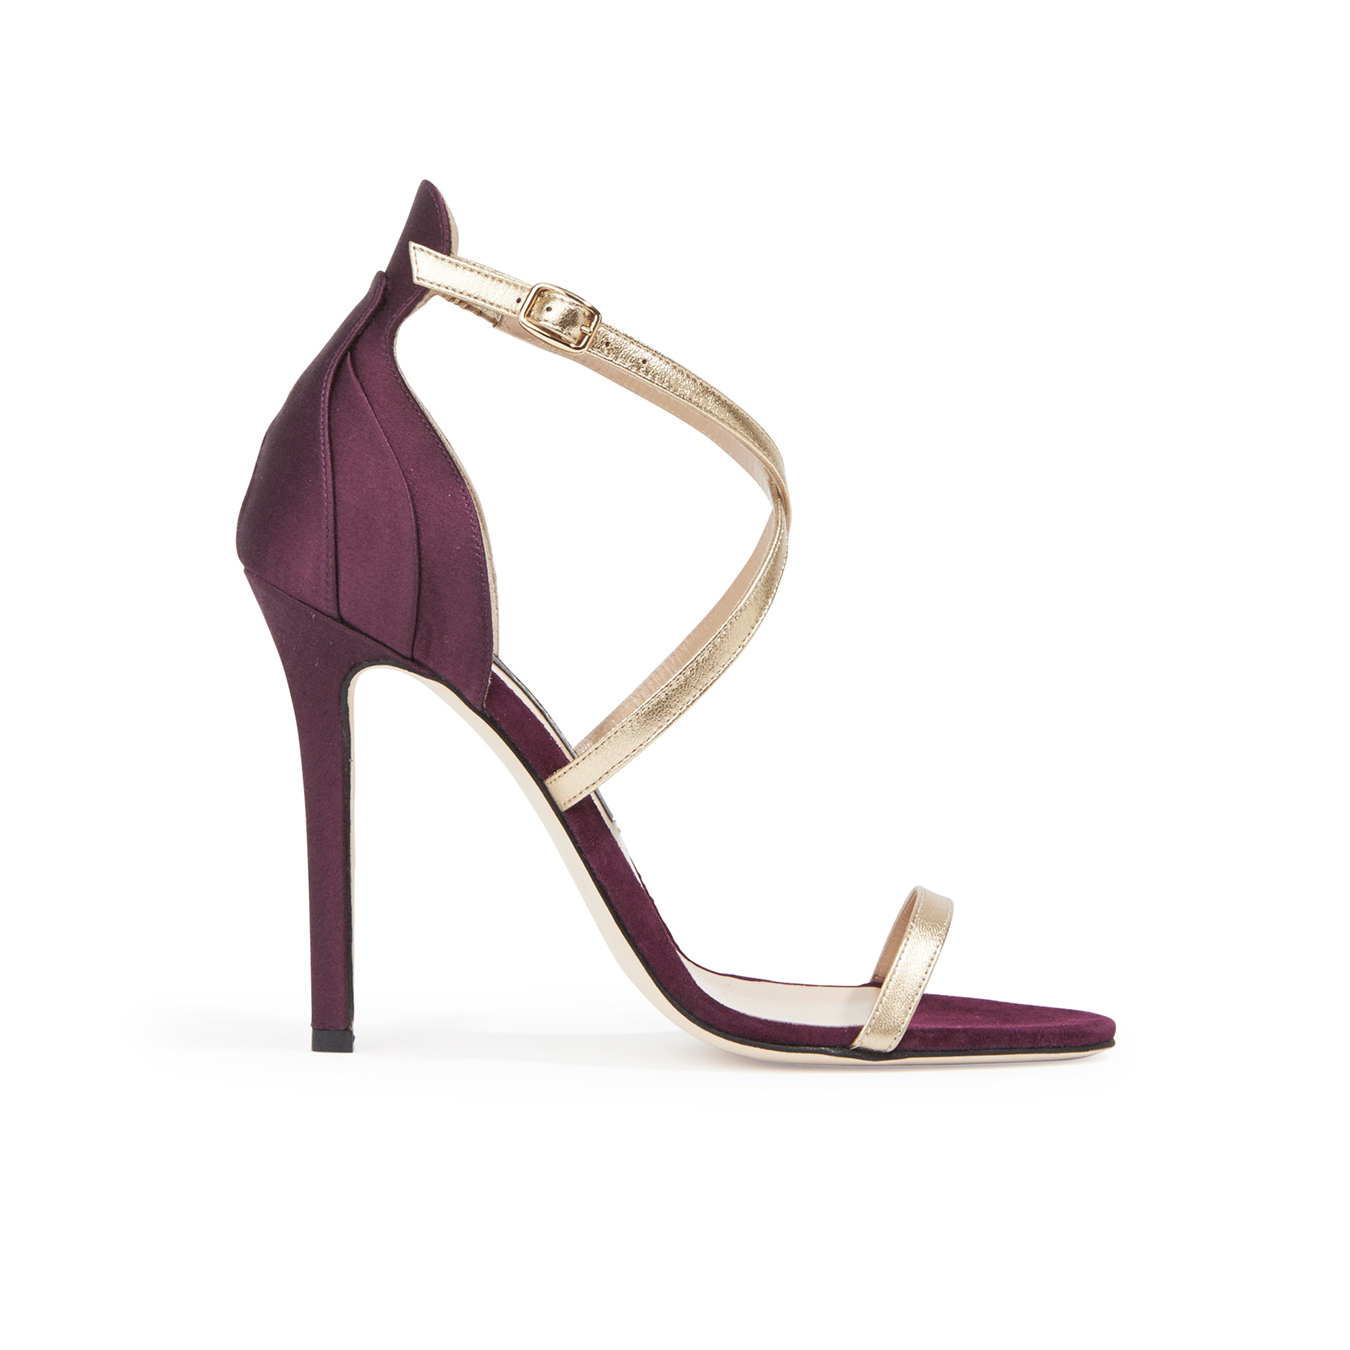 Zac Posen Metallic Sandals